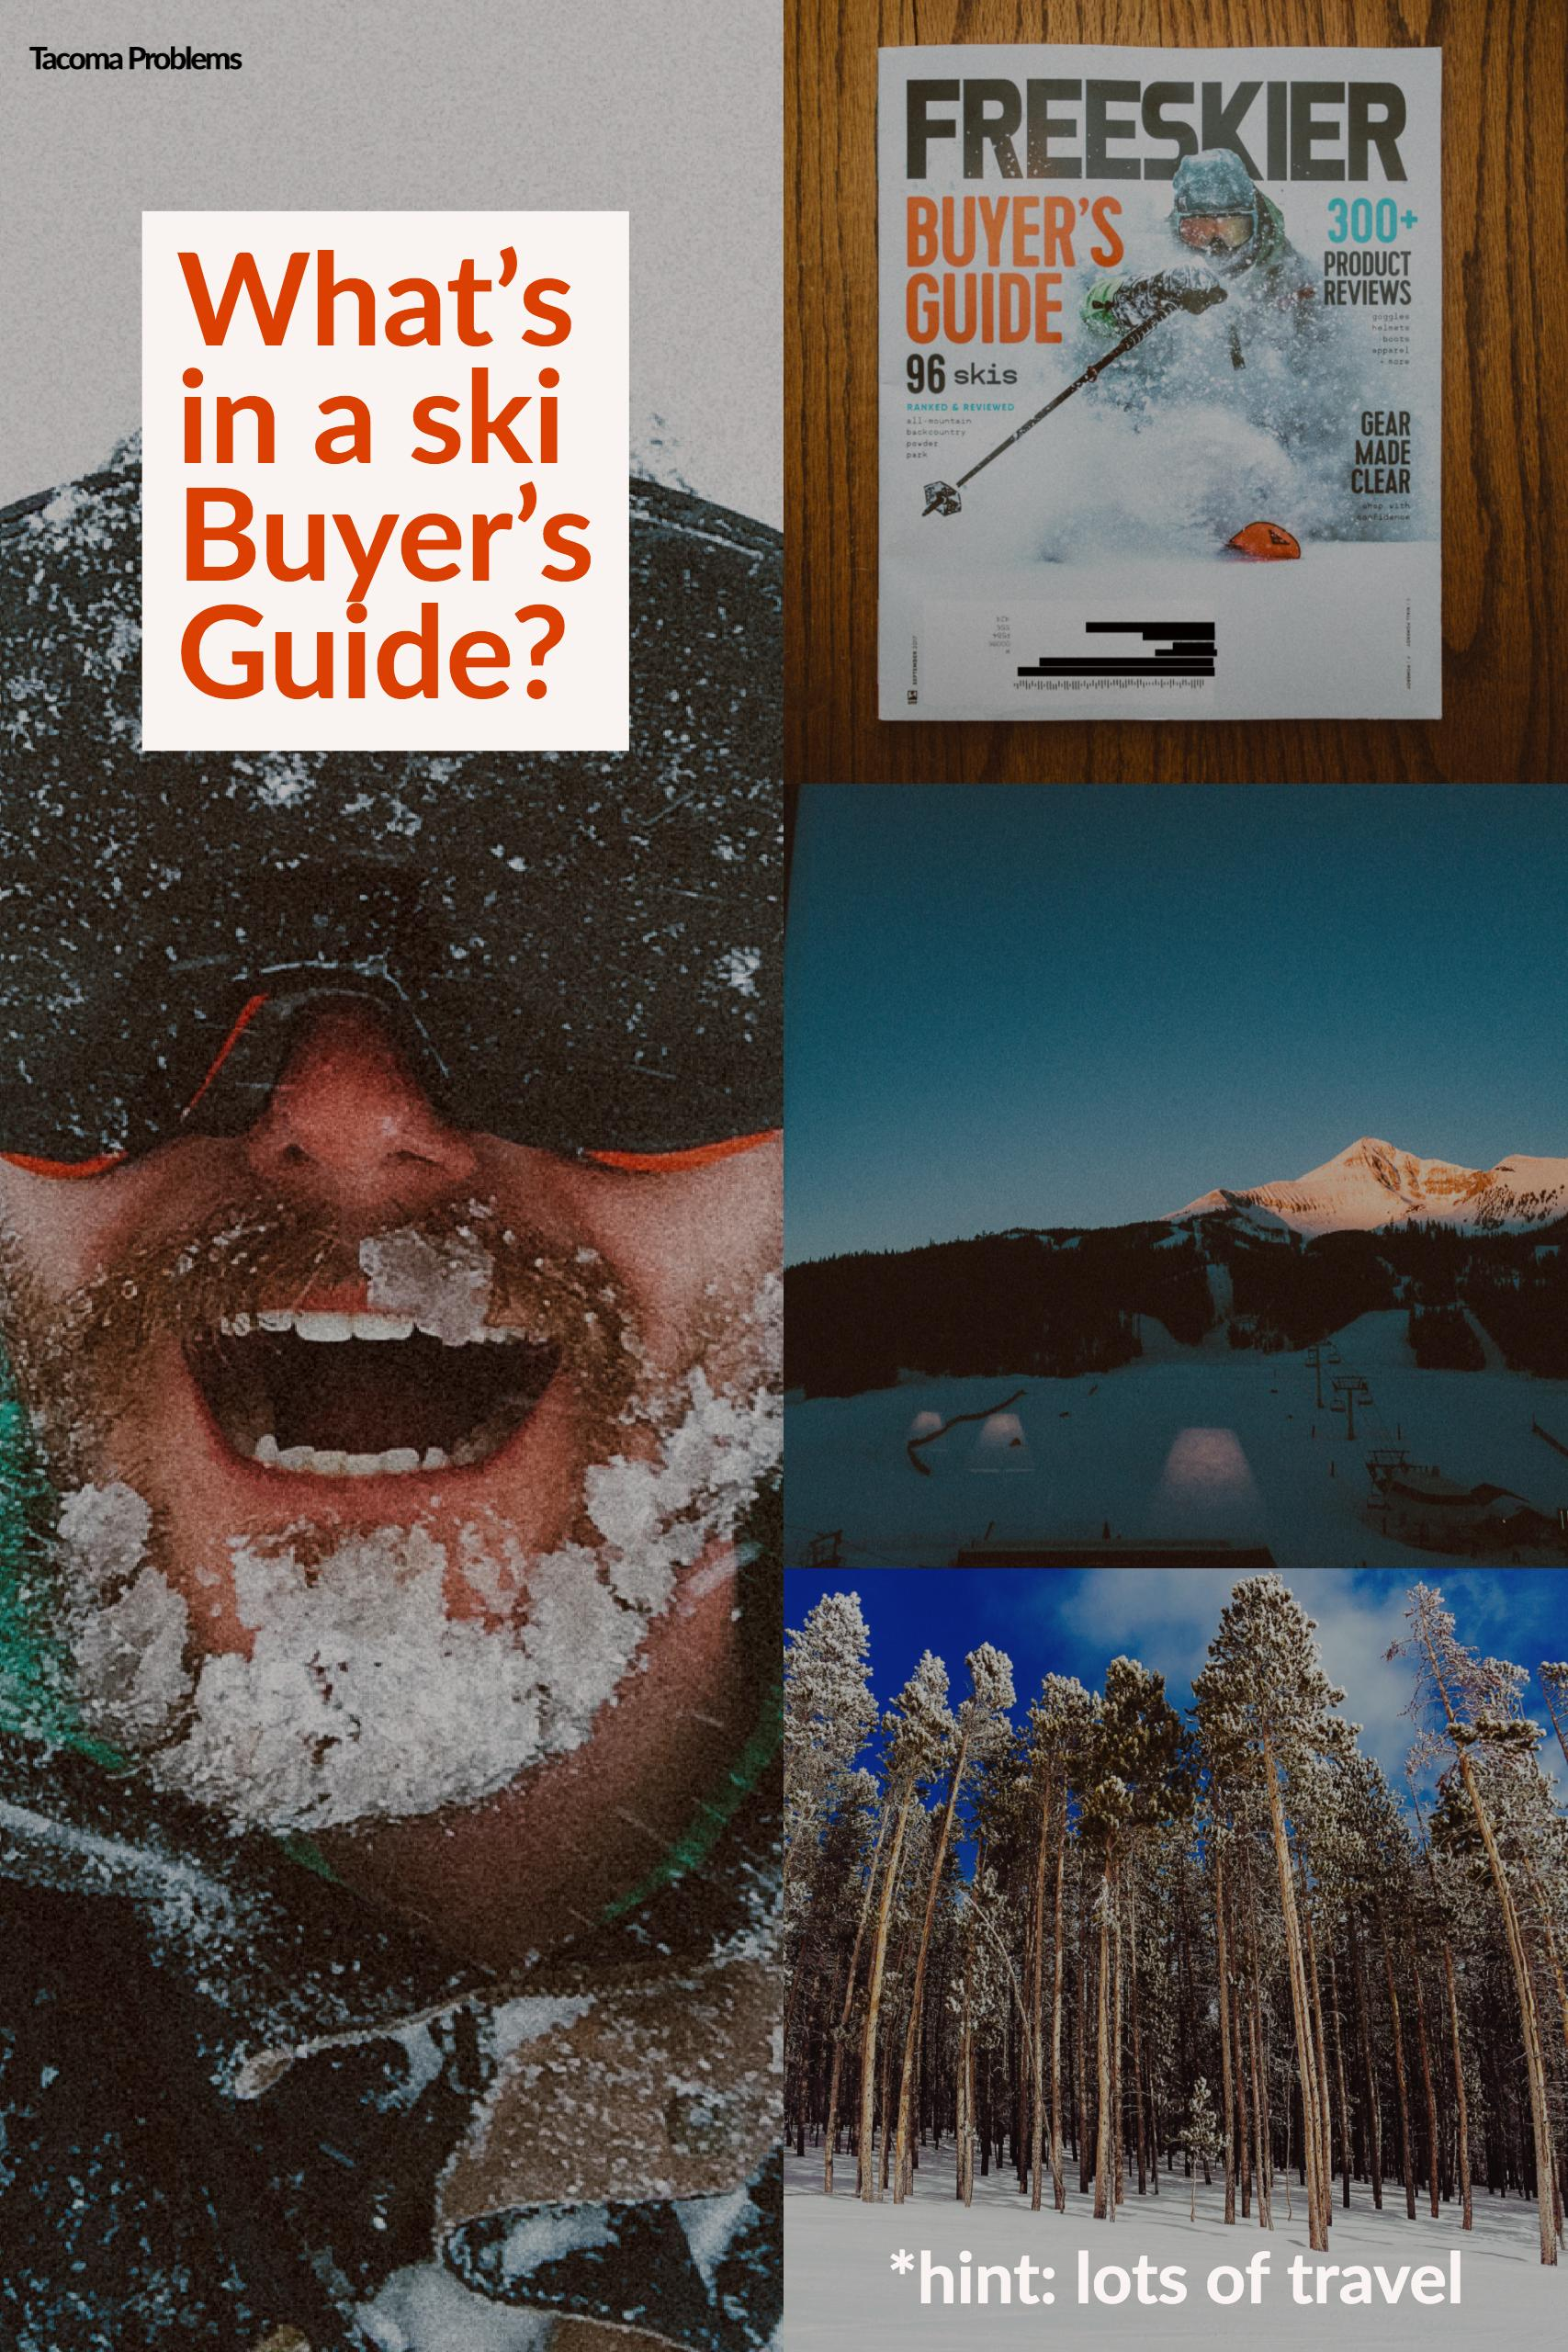 What's in a ski Buyer's Guide?